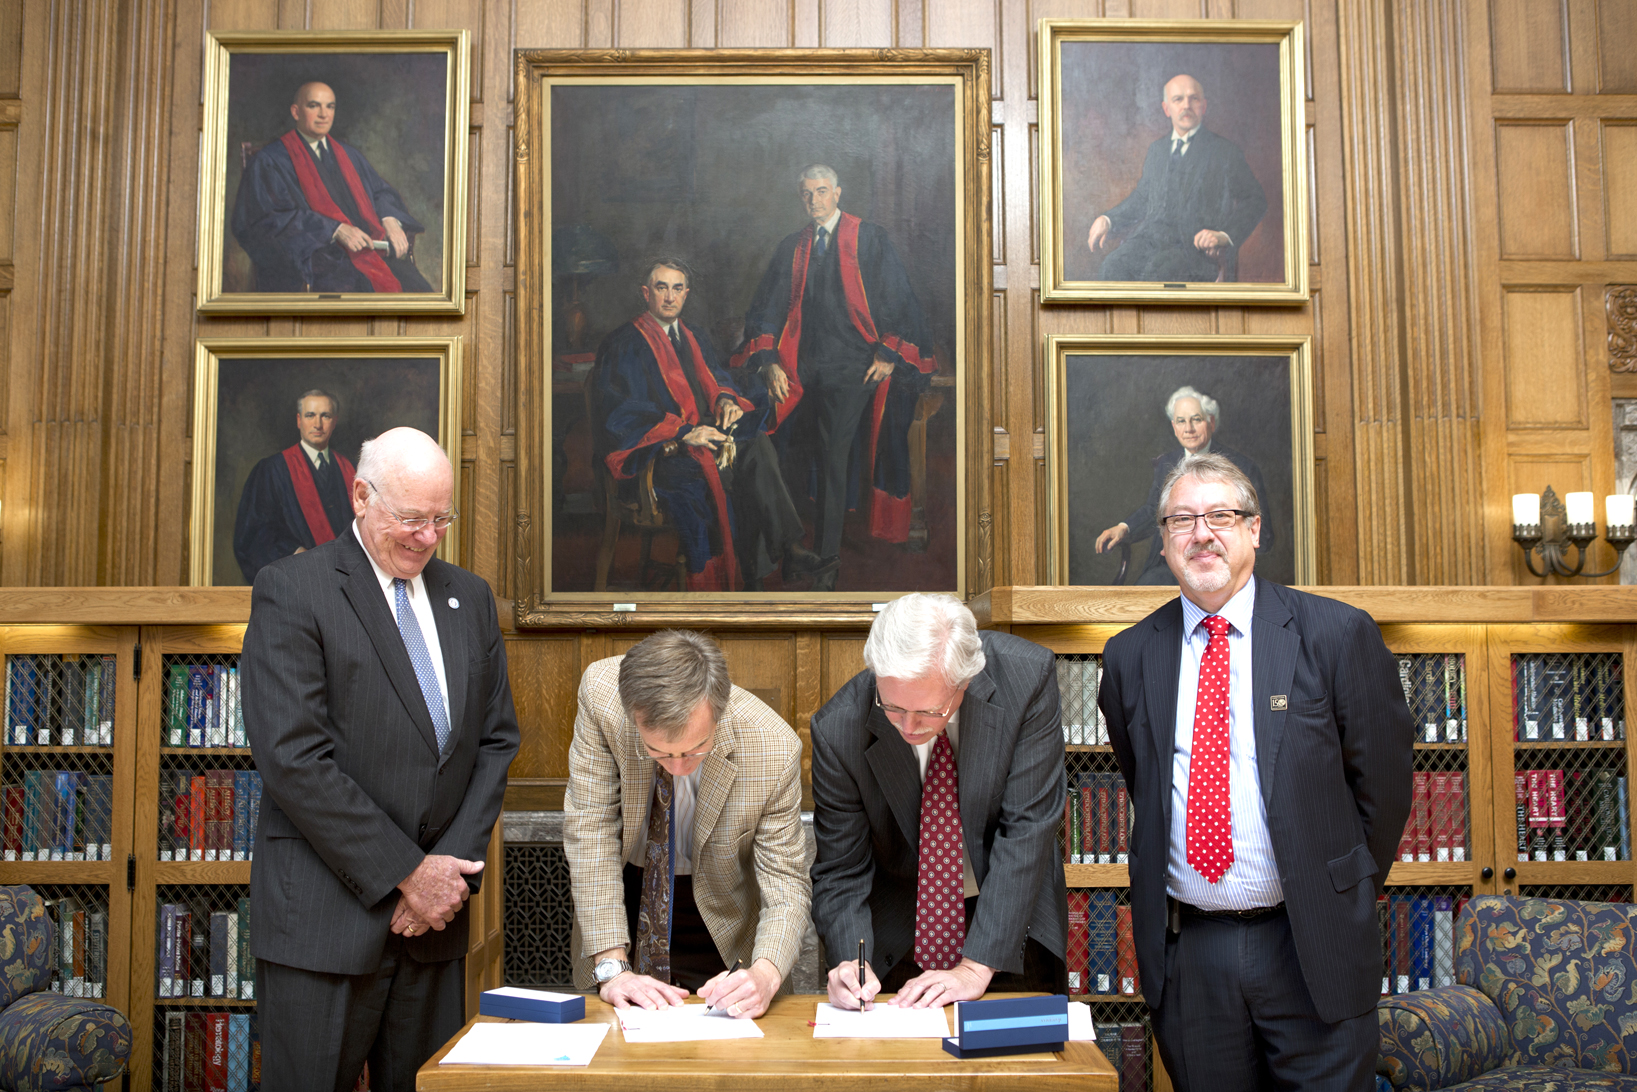 Taking part in the signing at the Mayo Clinic in Rochester, Minnesota were (from left) Dr. James Keeton, Dr. Robert Rizza, Dr. Richard Summers, and Dr. Gregory Gores, Mayo Clinic executive dean for research.